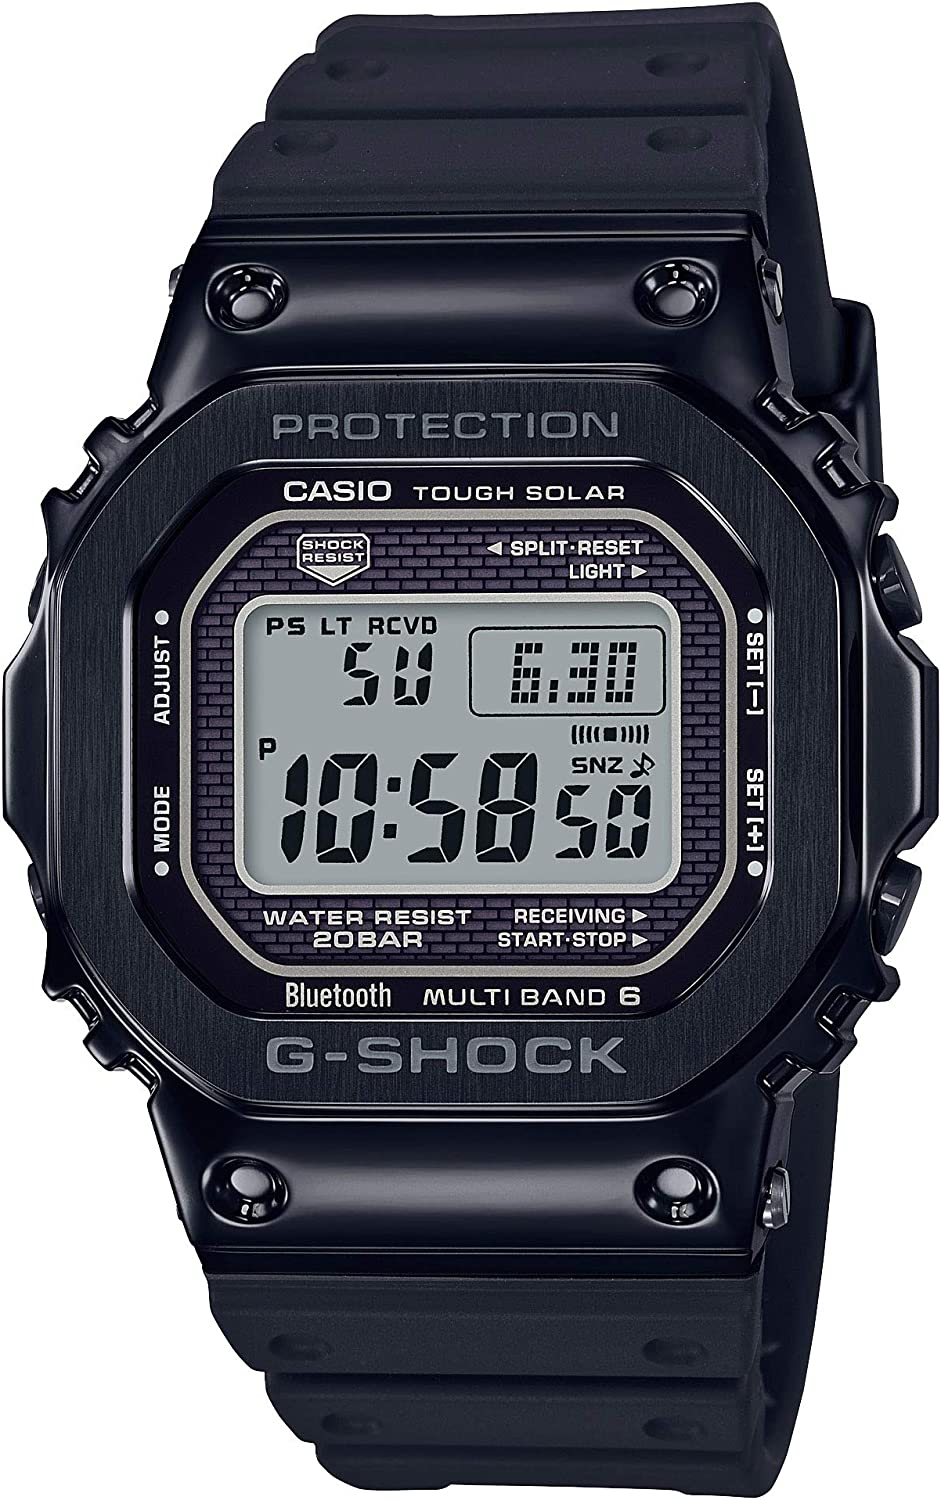 Casio G-SHOCK GMW-B5000G-1JF Radio Solar Watch Japan Domestic Genuine Products